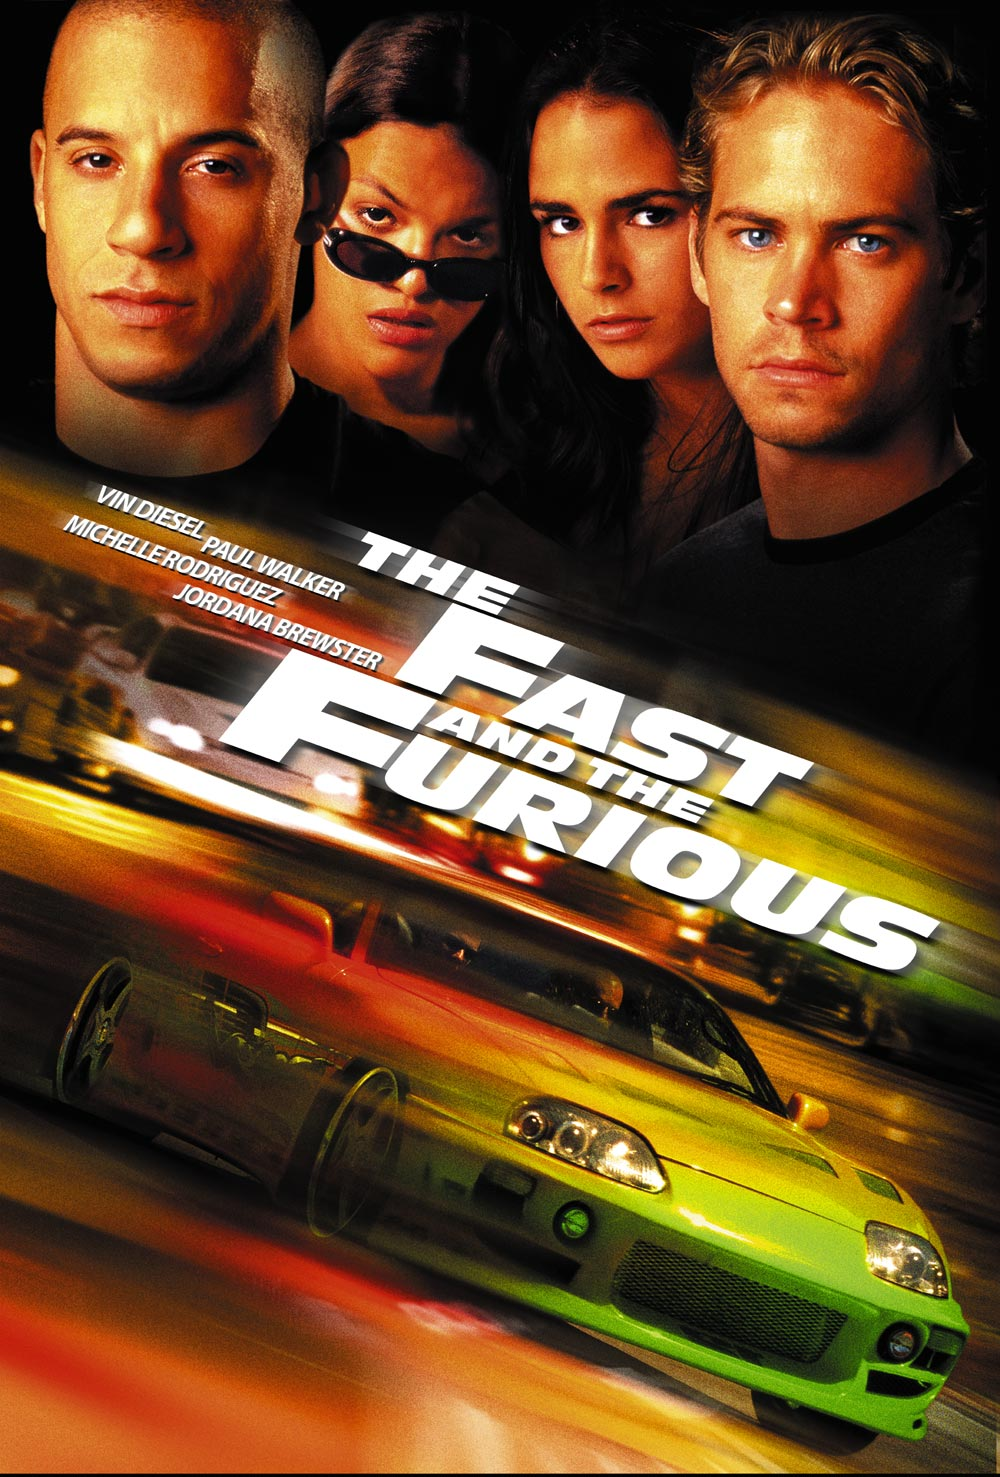 The fast and the furious series